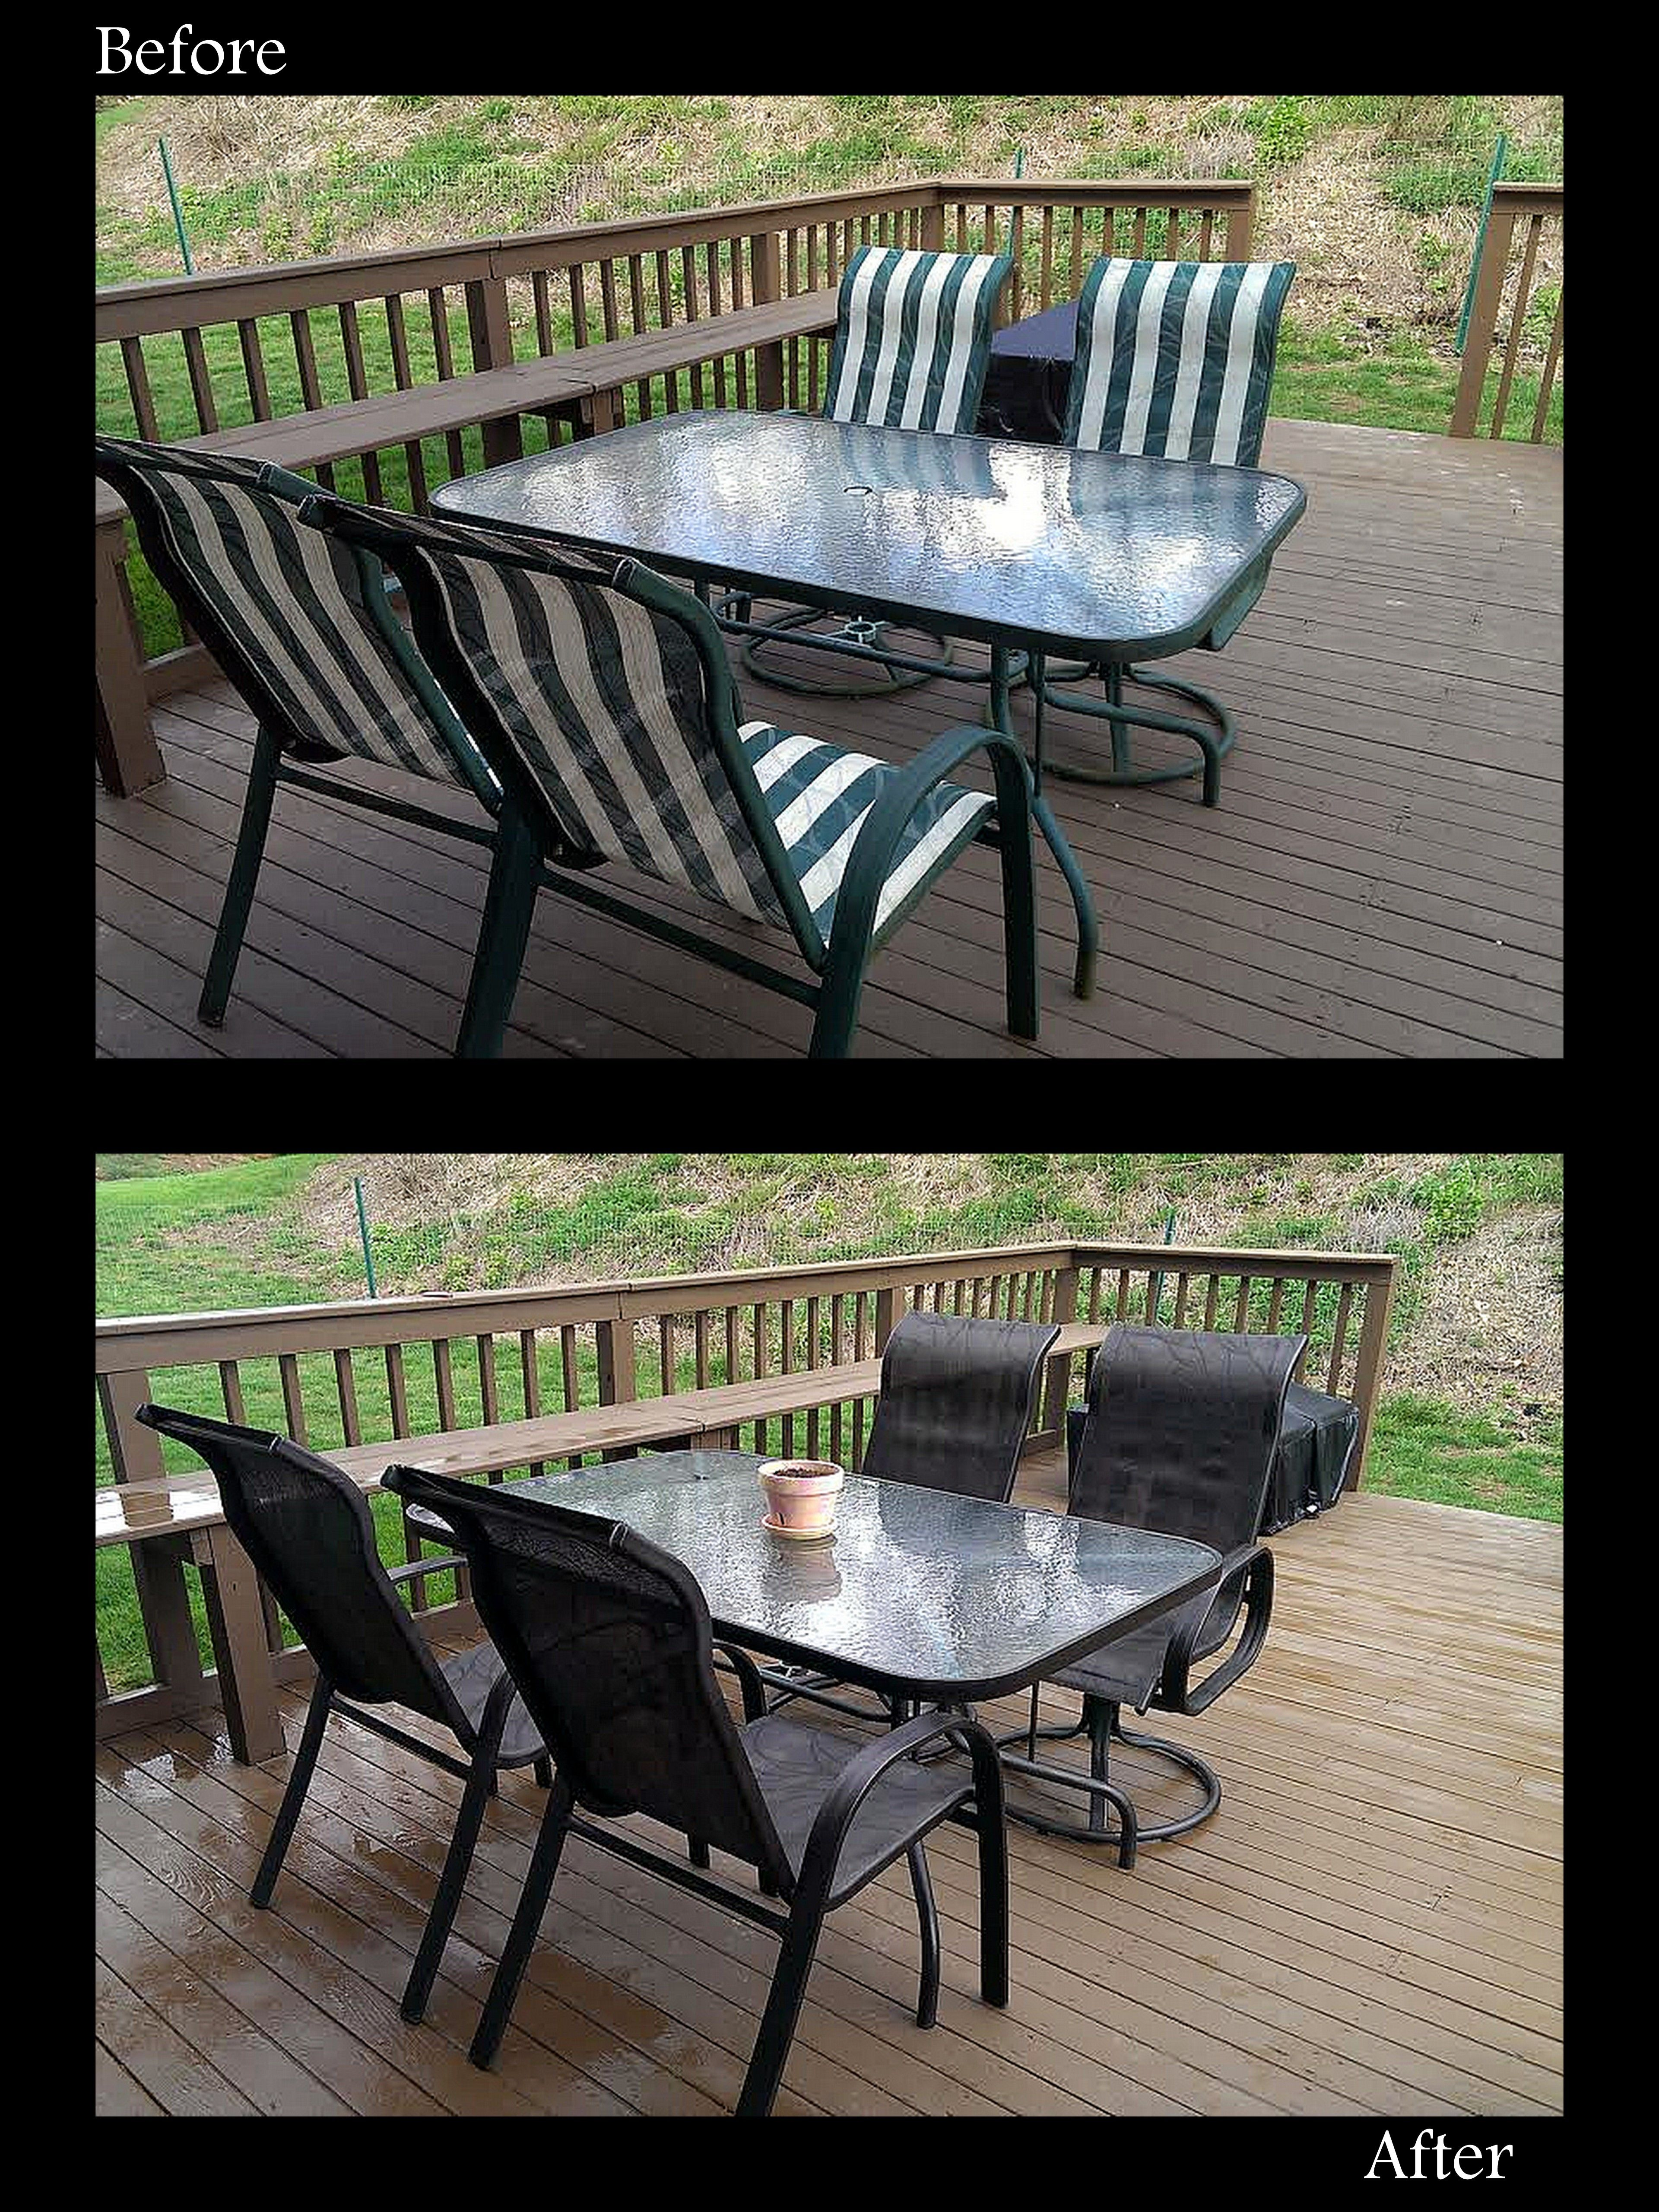 redo sling patio chairs oversized leather chair and ottoman sets your old outdated set using spray paint used